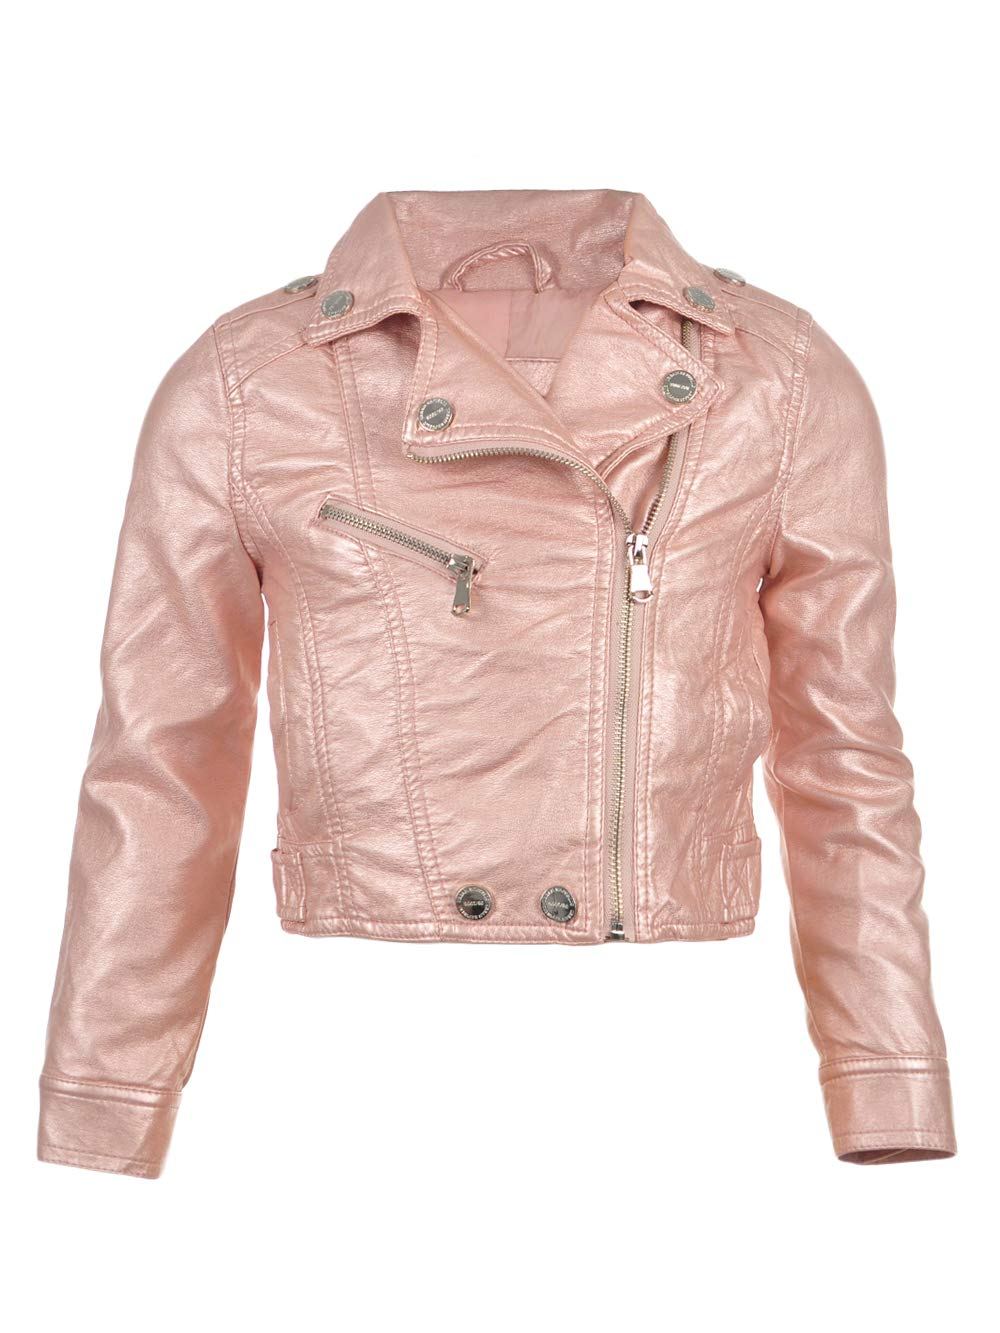 Urban Republic Baby Little Girls' Toddler Moto Jacket - Rose, 4t by Urban Republic